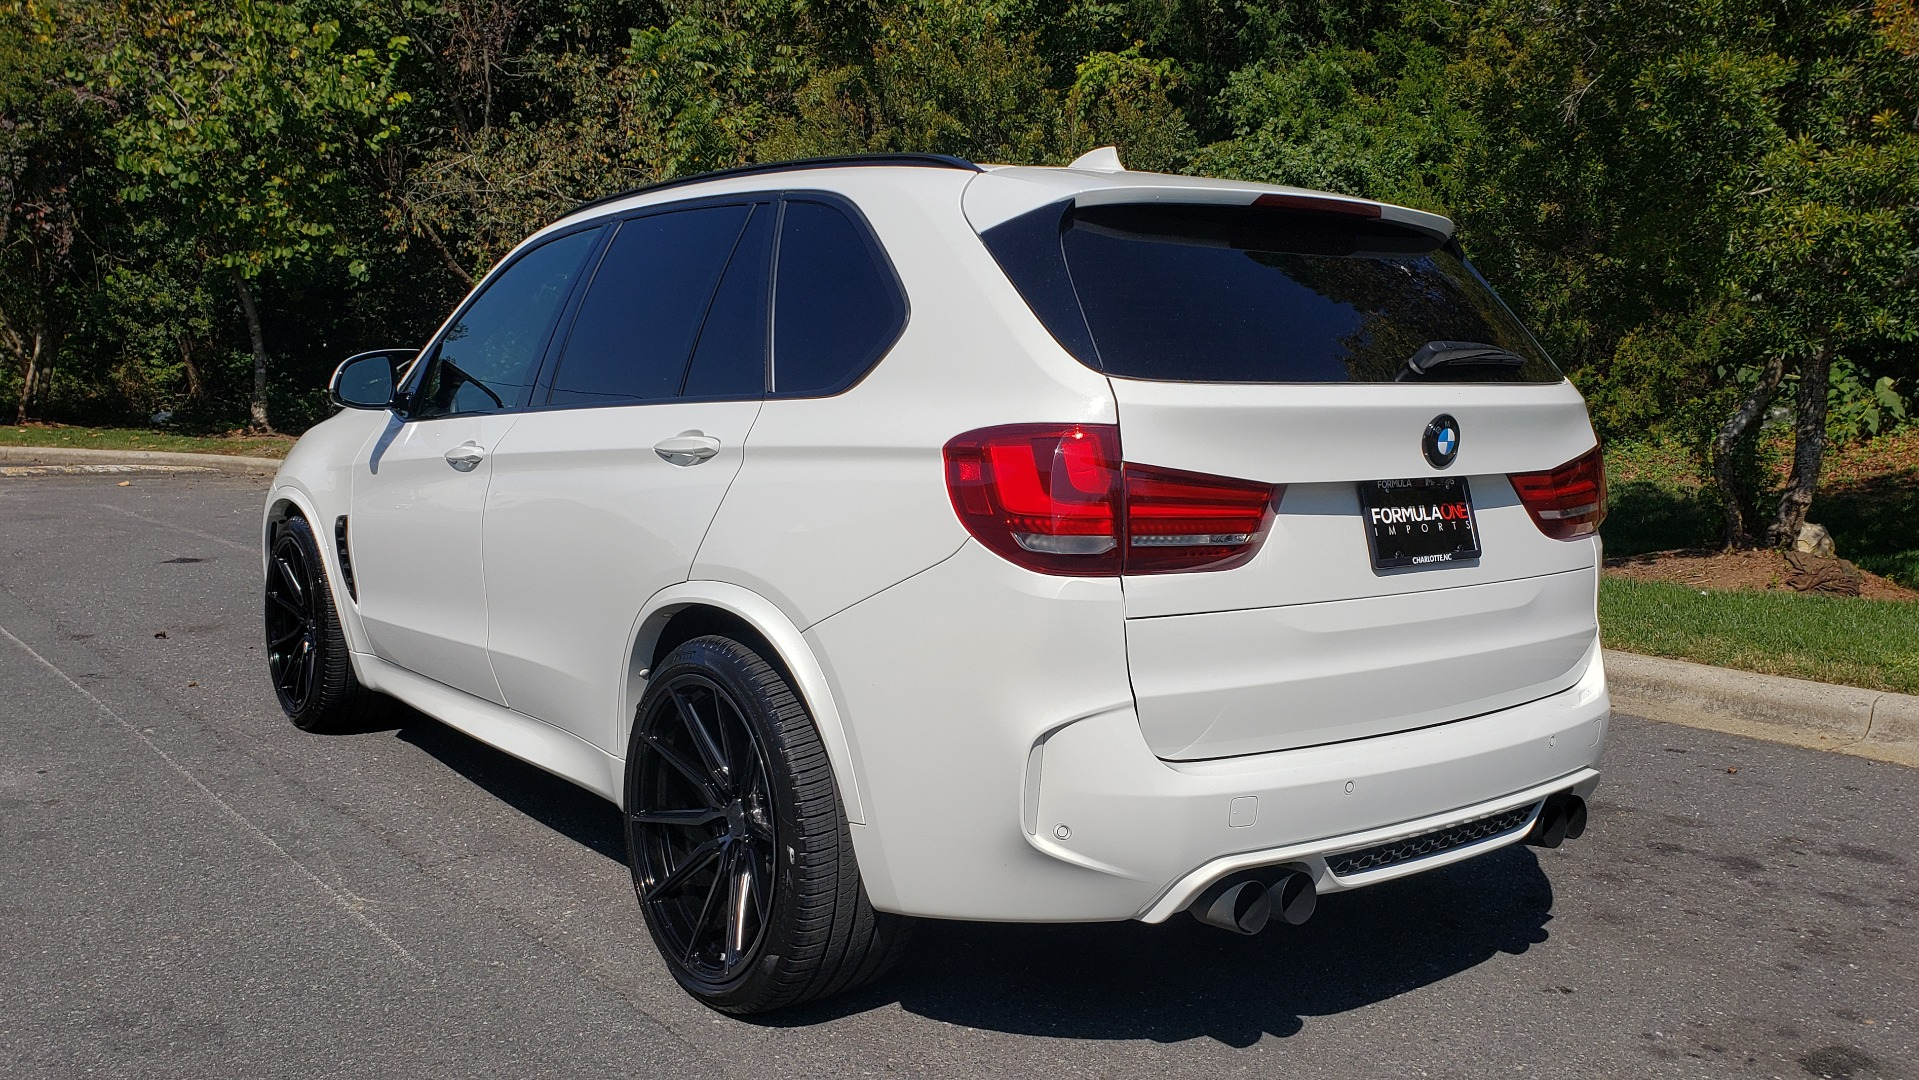 Used 2017 BMW X5 M SPORT / AWD / DRVR ASST / EXEC PKG / B&O SND / NIGHT VIS / PARK ASST for sale Sold at Formula Imports in Charlotte NC 28227 4